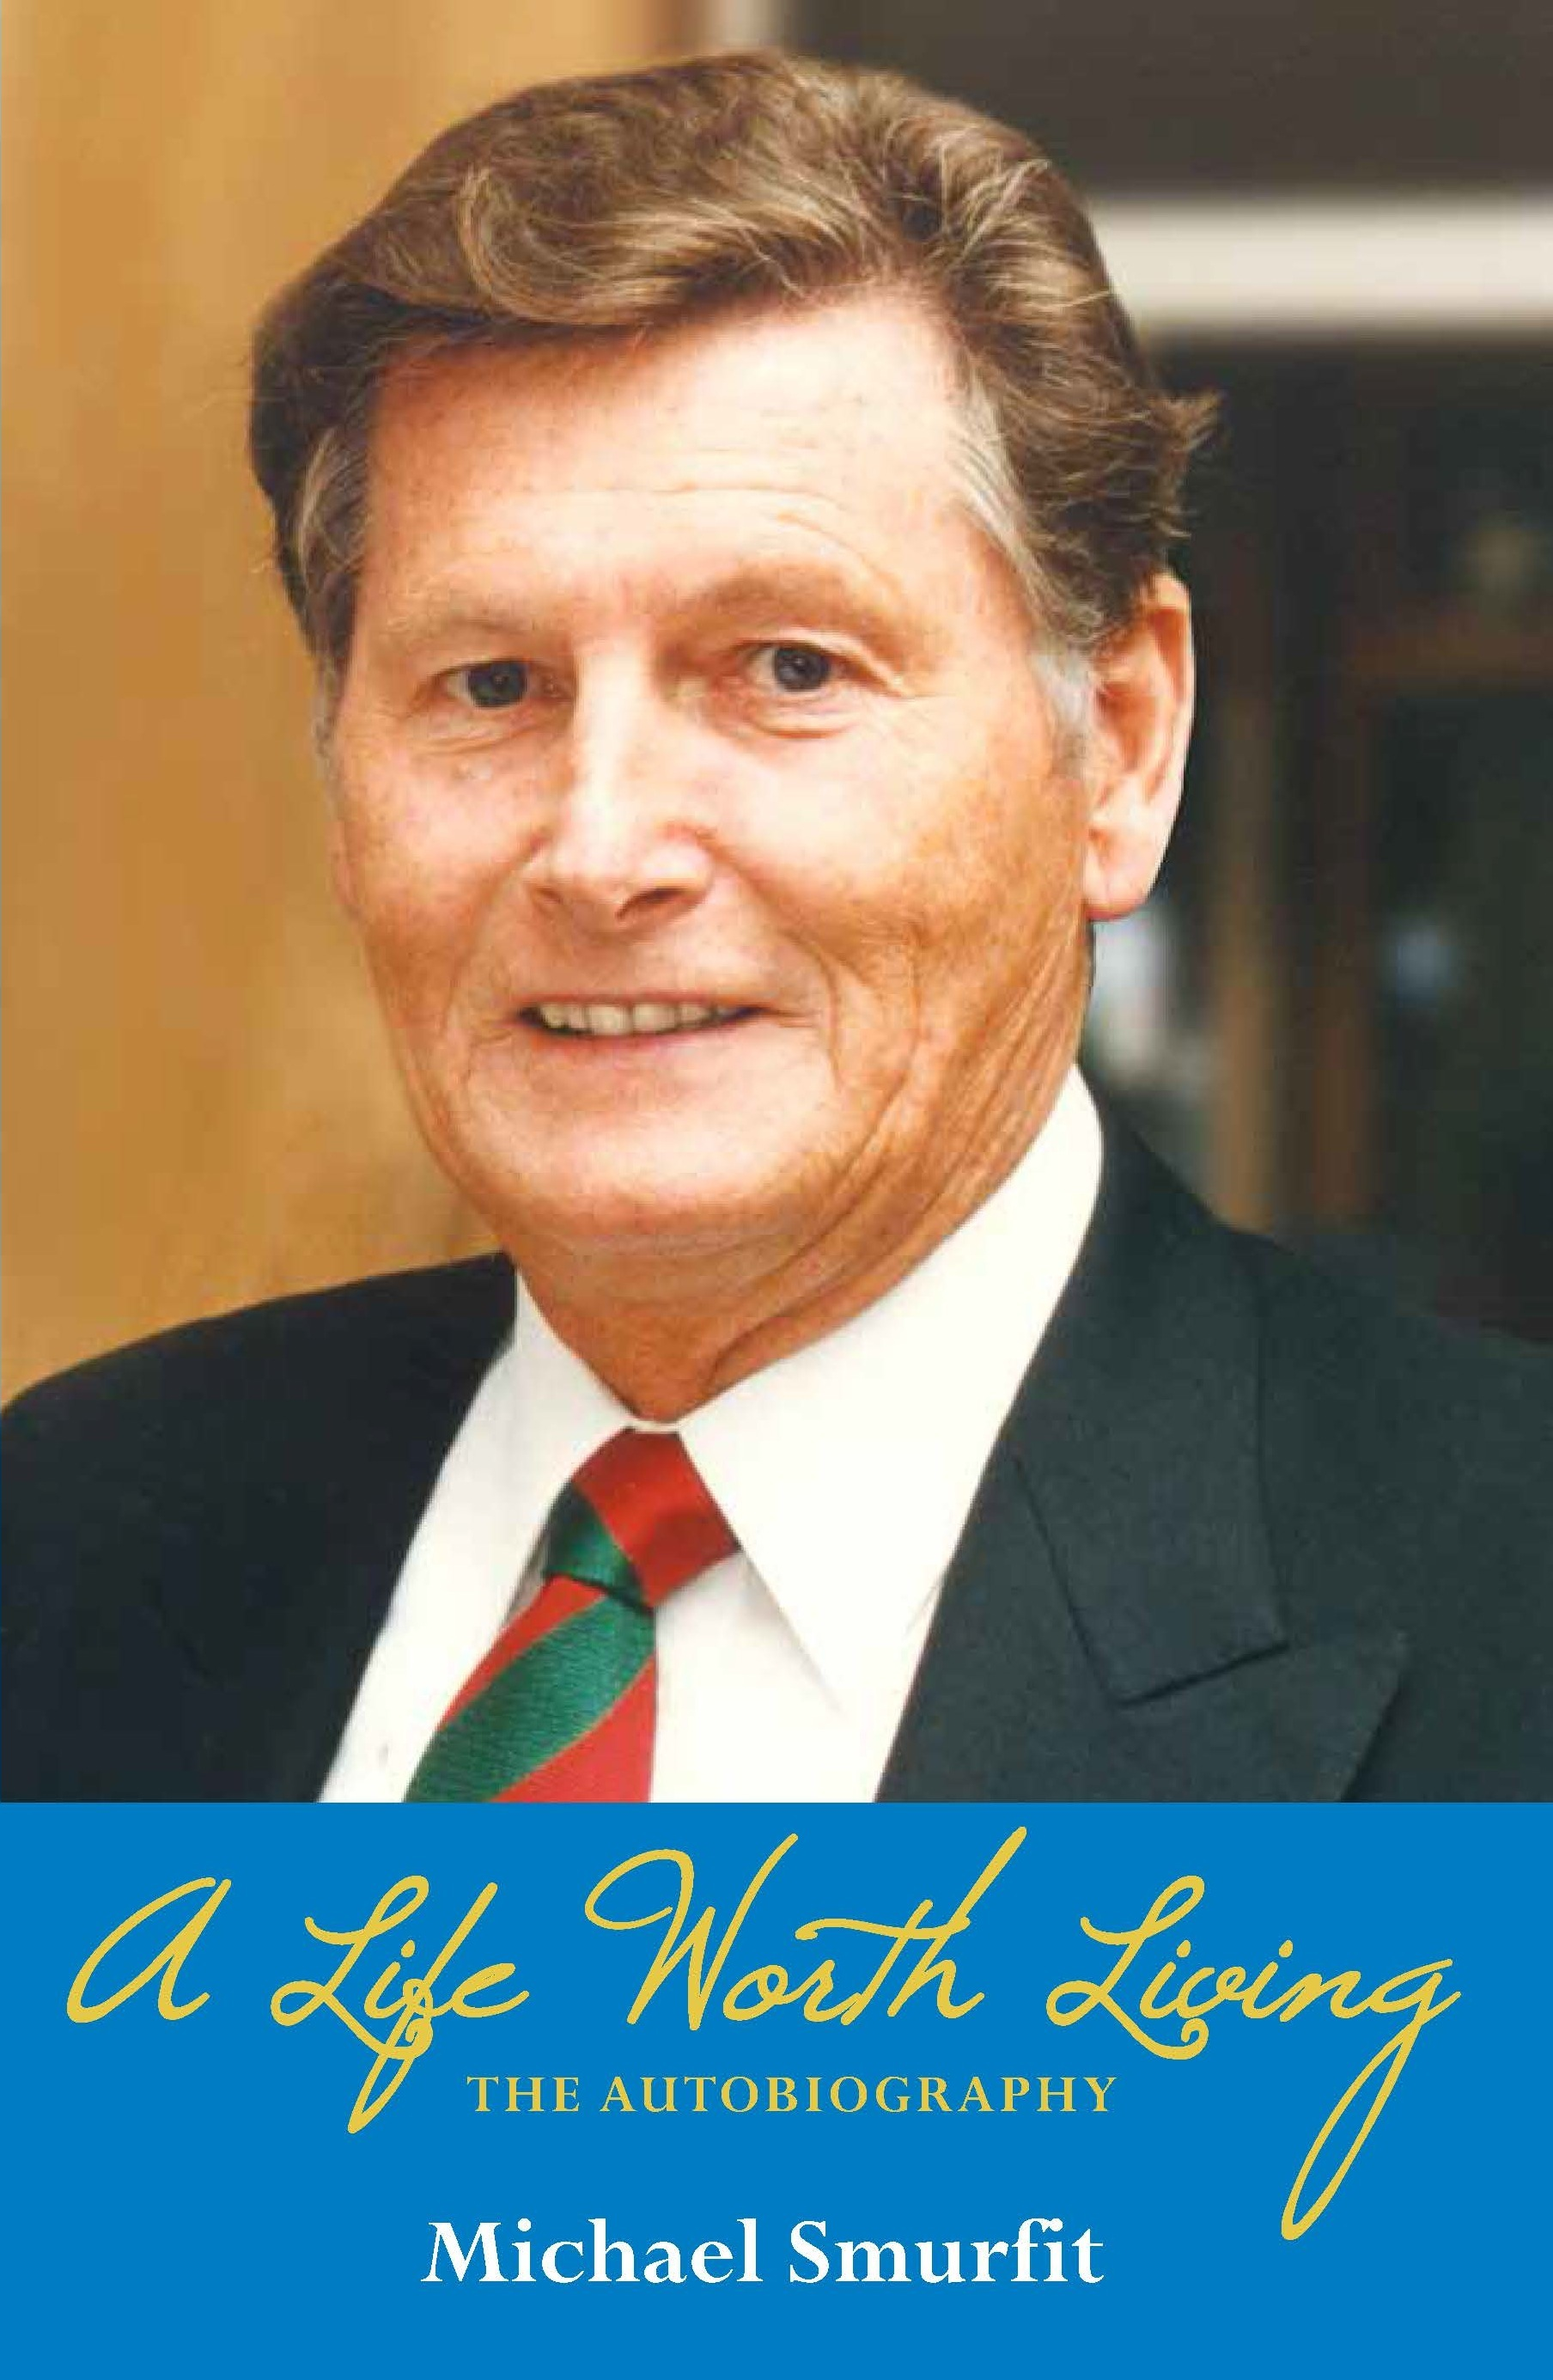 A Life Worth Living: Michael Smurfit's Autobiography